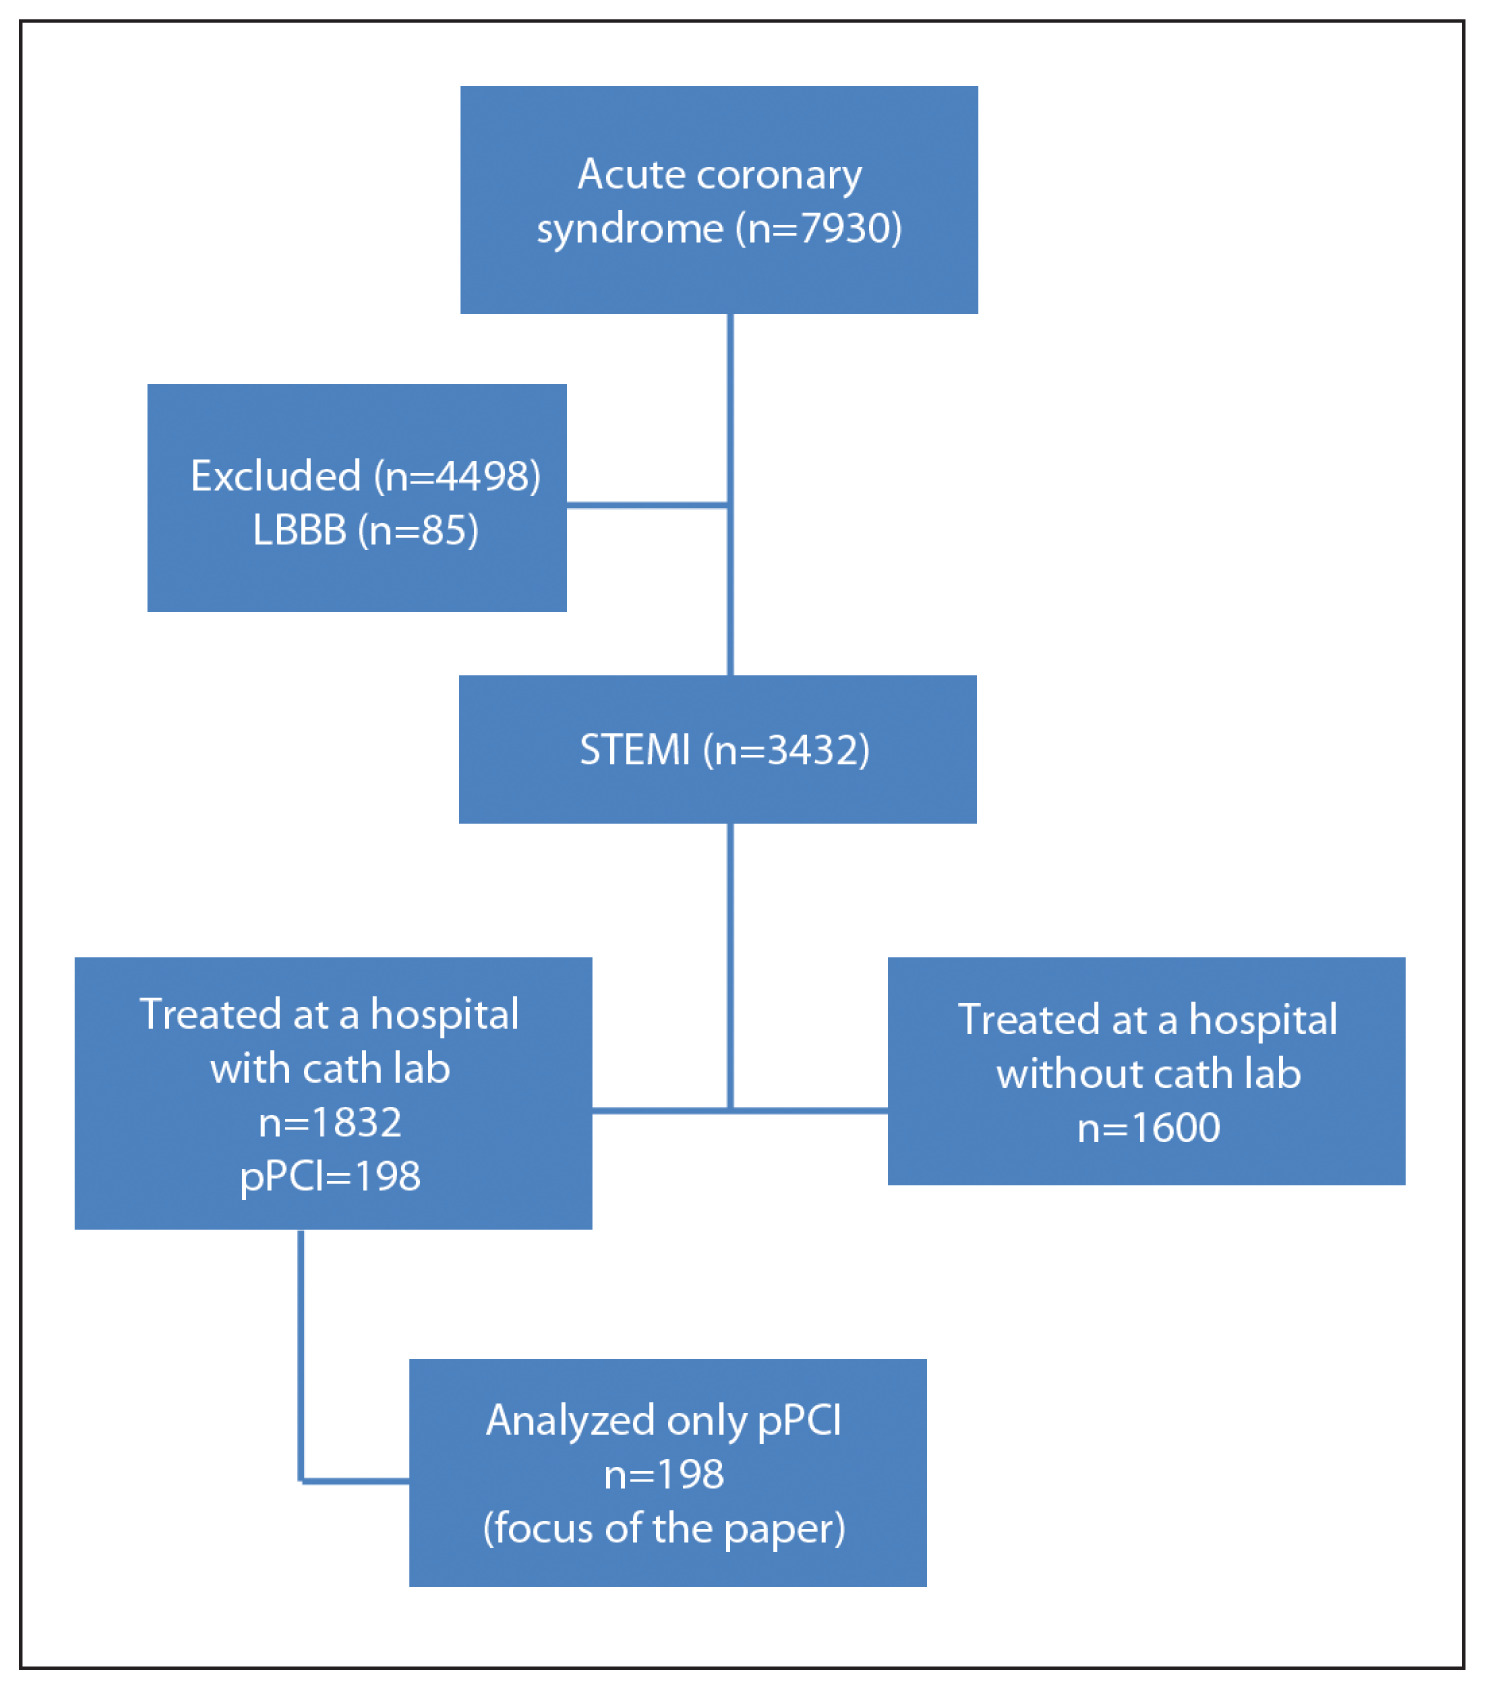 Quality of care in primary percutaneous coronary intervention for